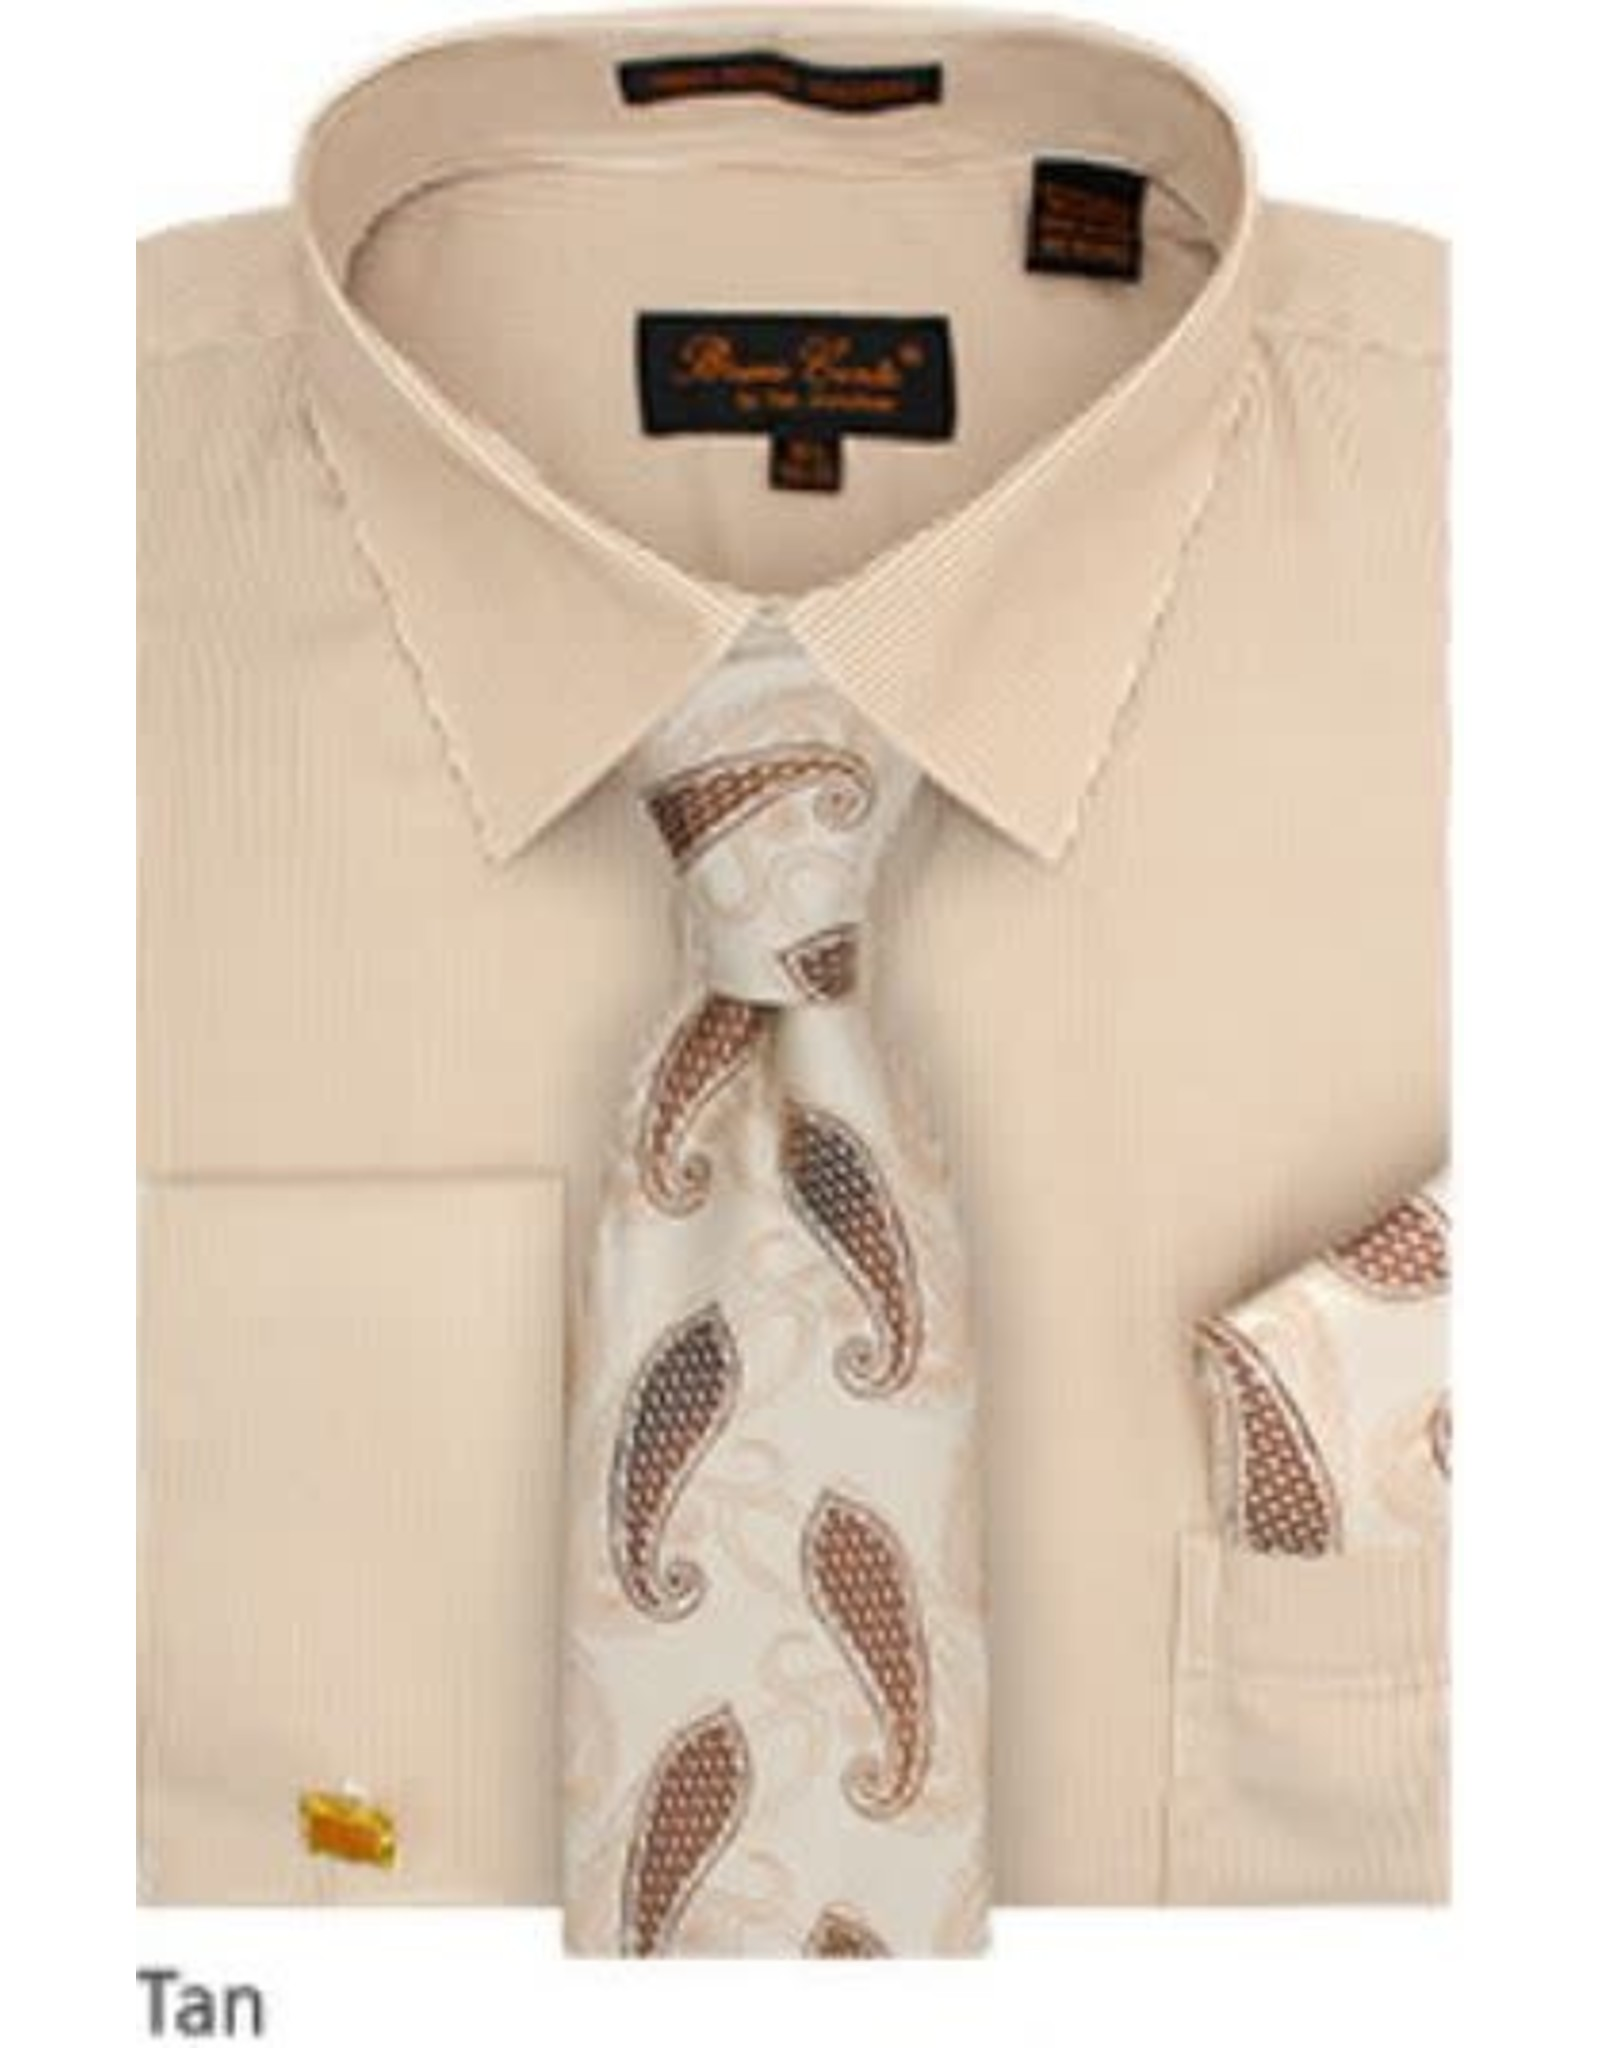 Bruno Conte Bruno Conte Shirt Set CS077 Tan